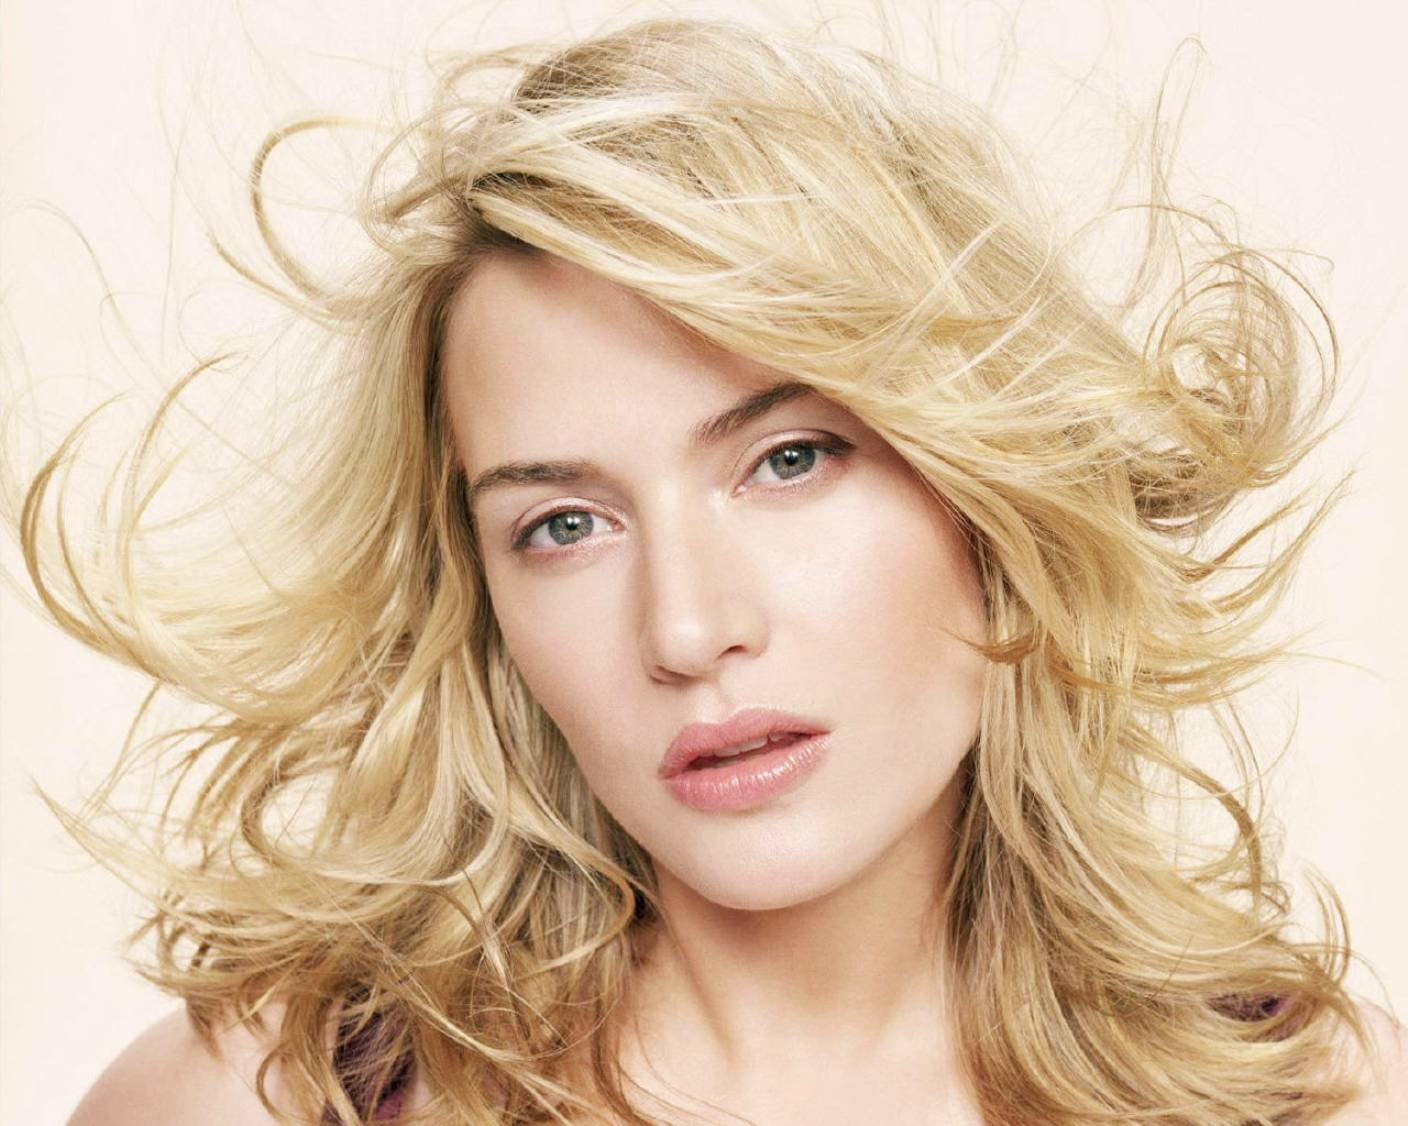 Wallpaper Name Hollywood Actress Kate Winslet Movies HD Wallpapers 1408x1126